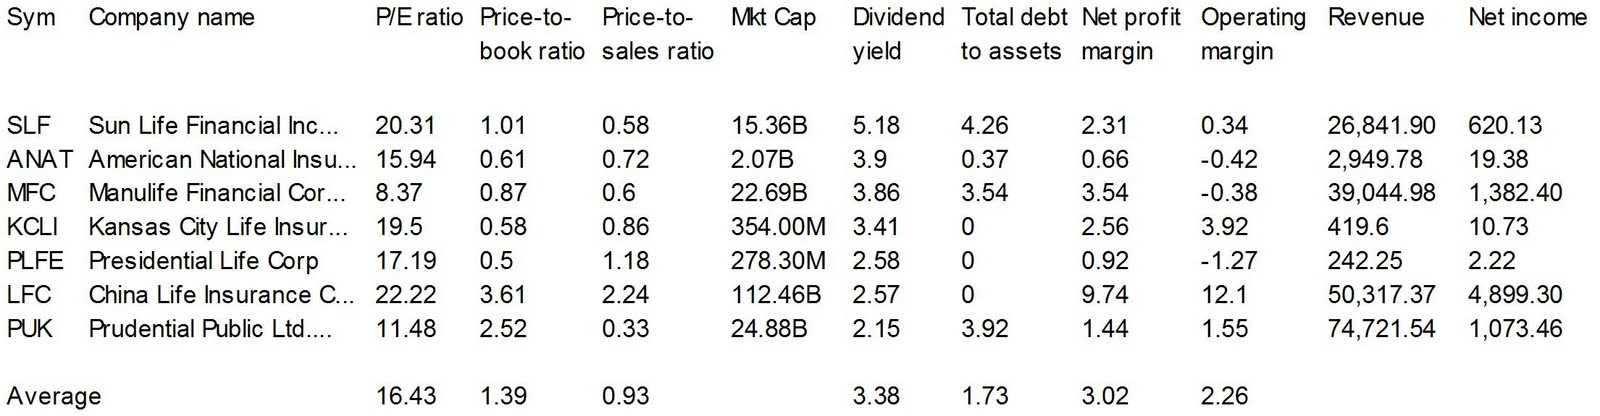 Dividend Yield Stock Capital Investment 2010 09 12